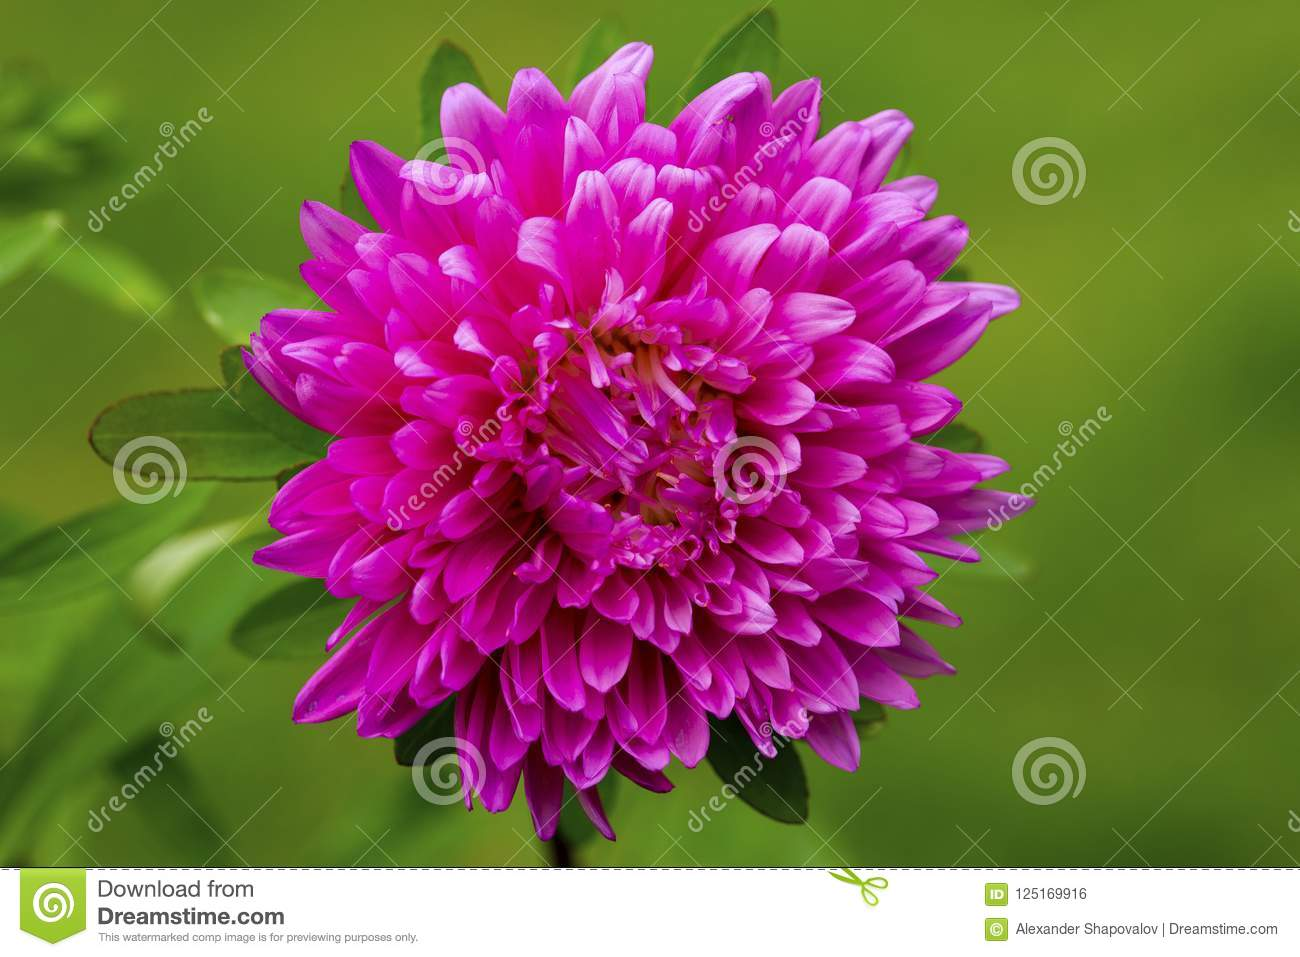 Gorgeous Close Up View Of Pink Aster Flower Isolated On Green